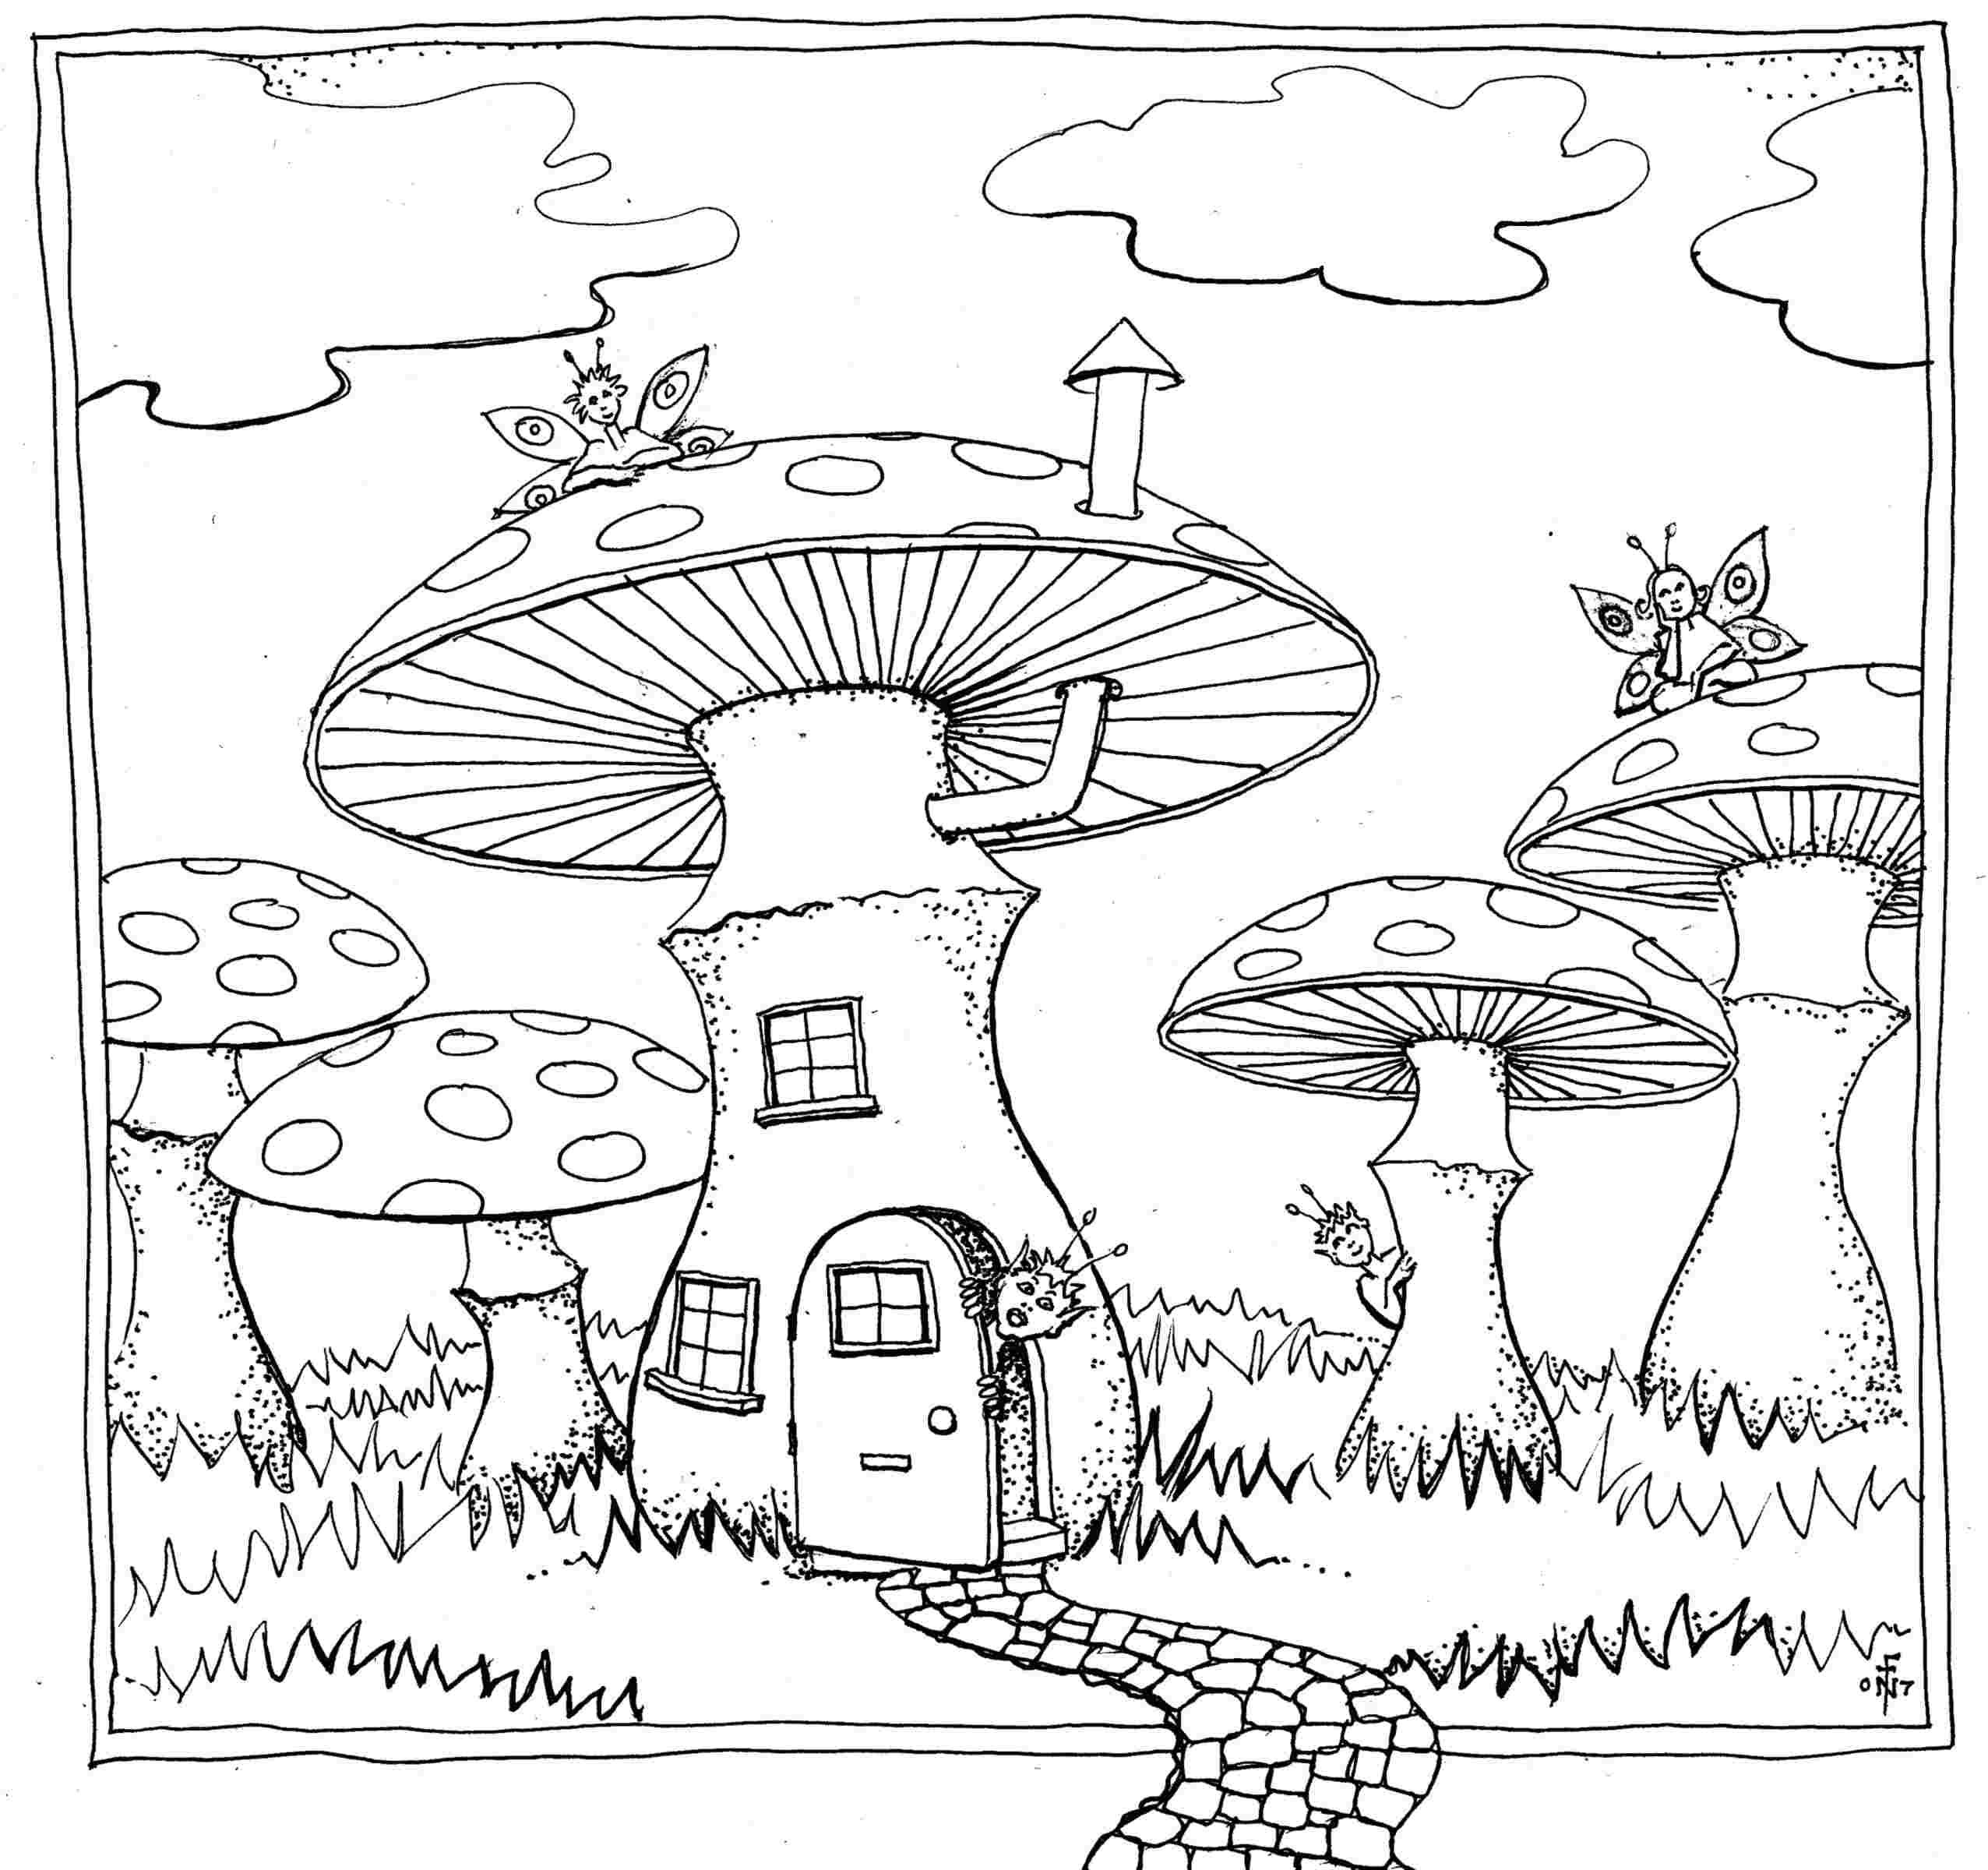 coloring pages for kids only | Pin on Coloring pages for all ages 2